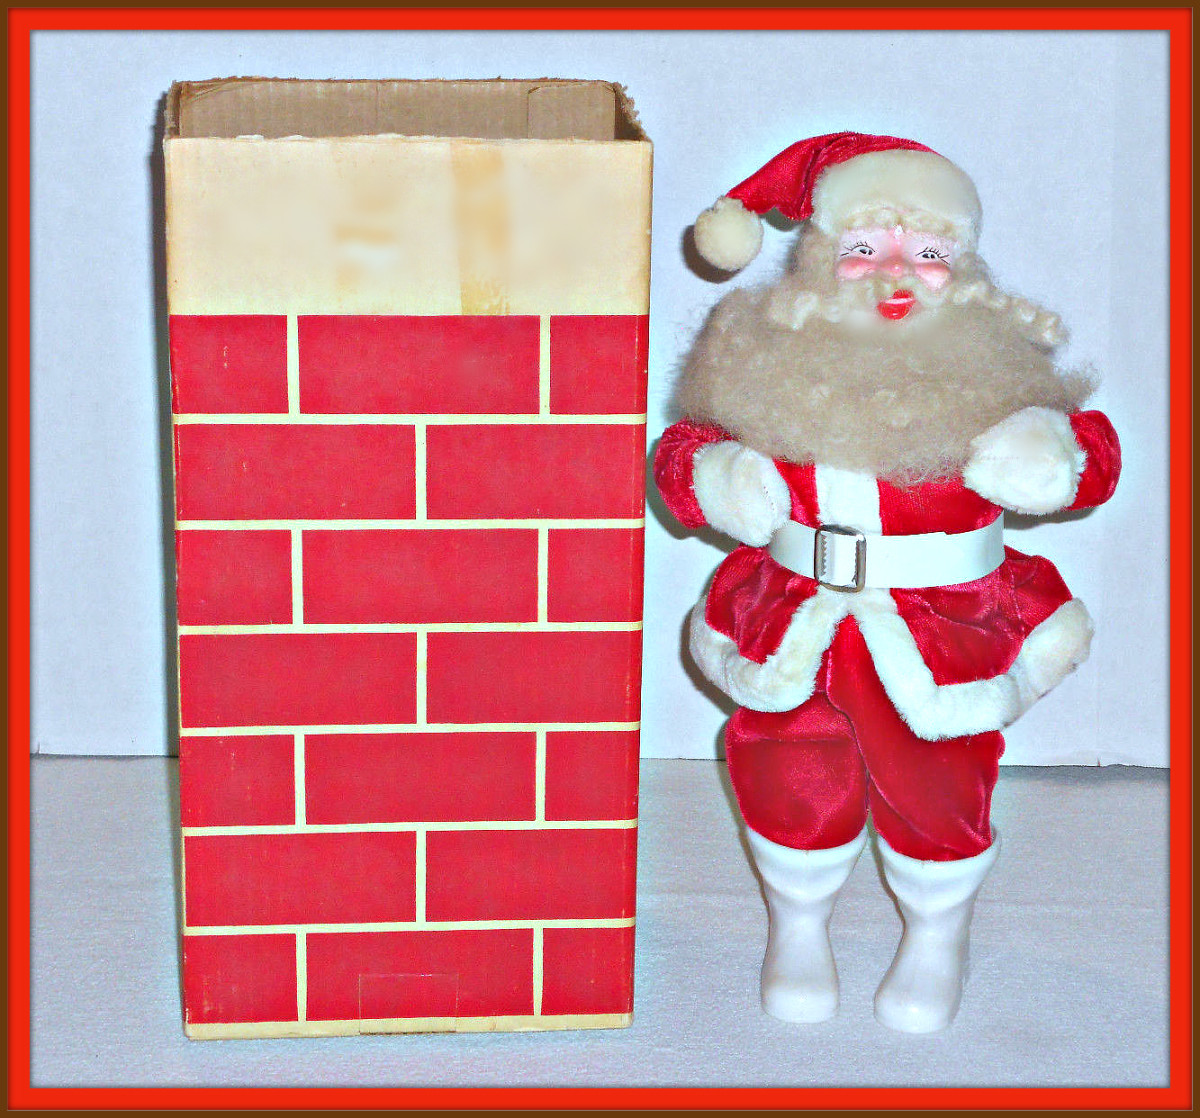 For the Christmas holidays in 1963 the Harold Gale Santa  came with his own Cardboard Chimney for your holiday display. What a wonderful way to get into the season with this as a center piece of your holiday decorations.